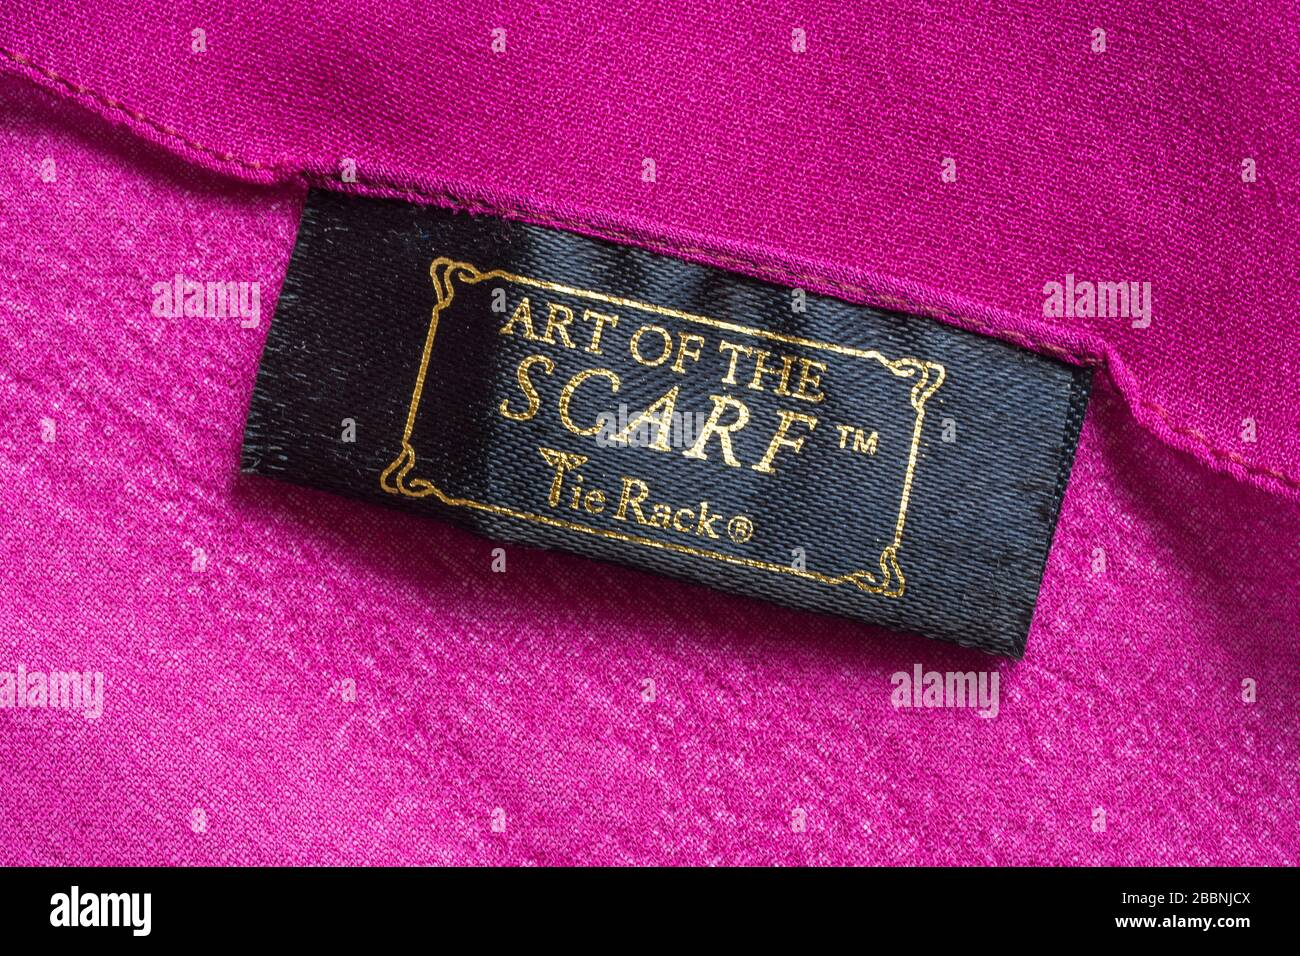 Art of the foulard Tie rack Label in woman's pink foulard - vendu au Royaume-Uni, Grande-Bretagne Banque D'Images